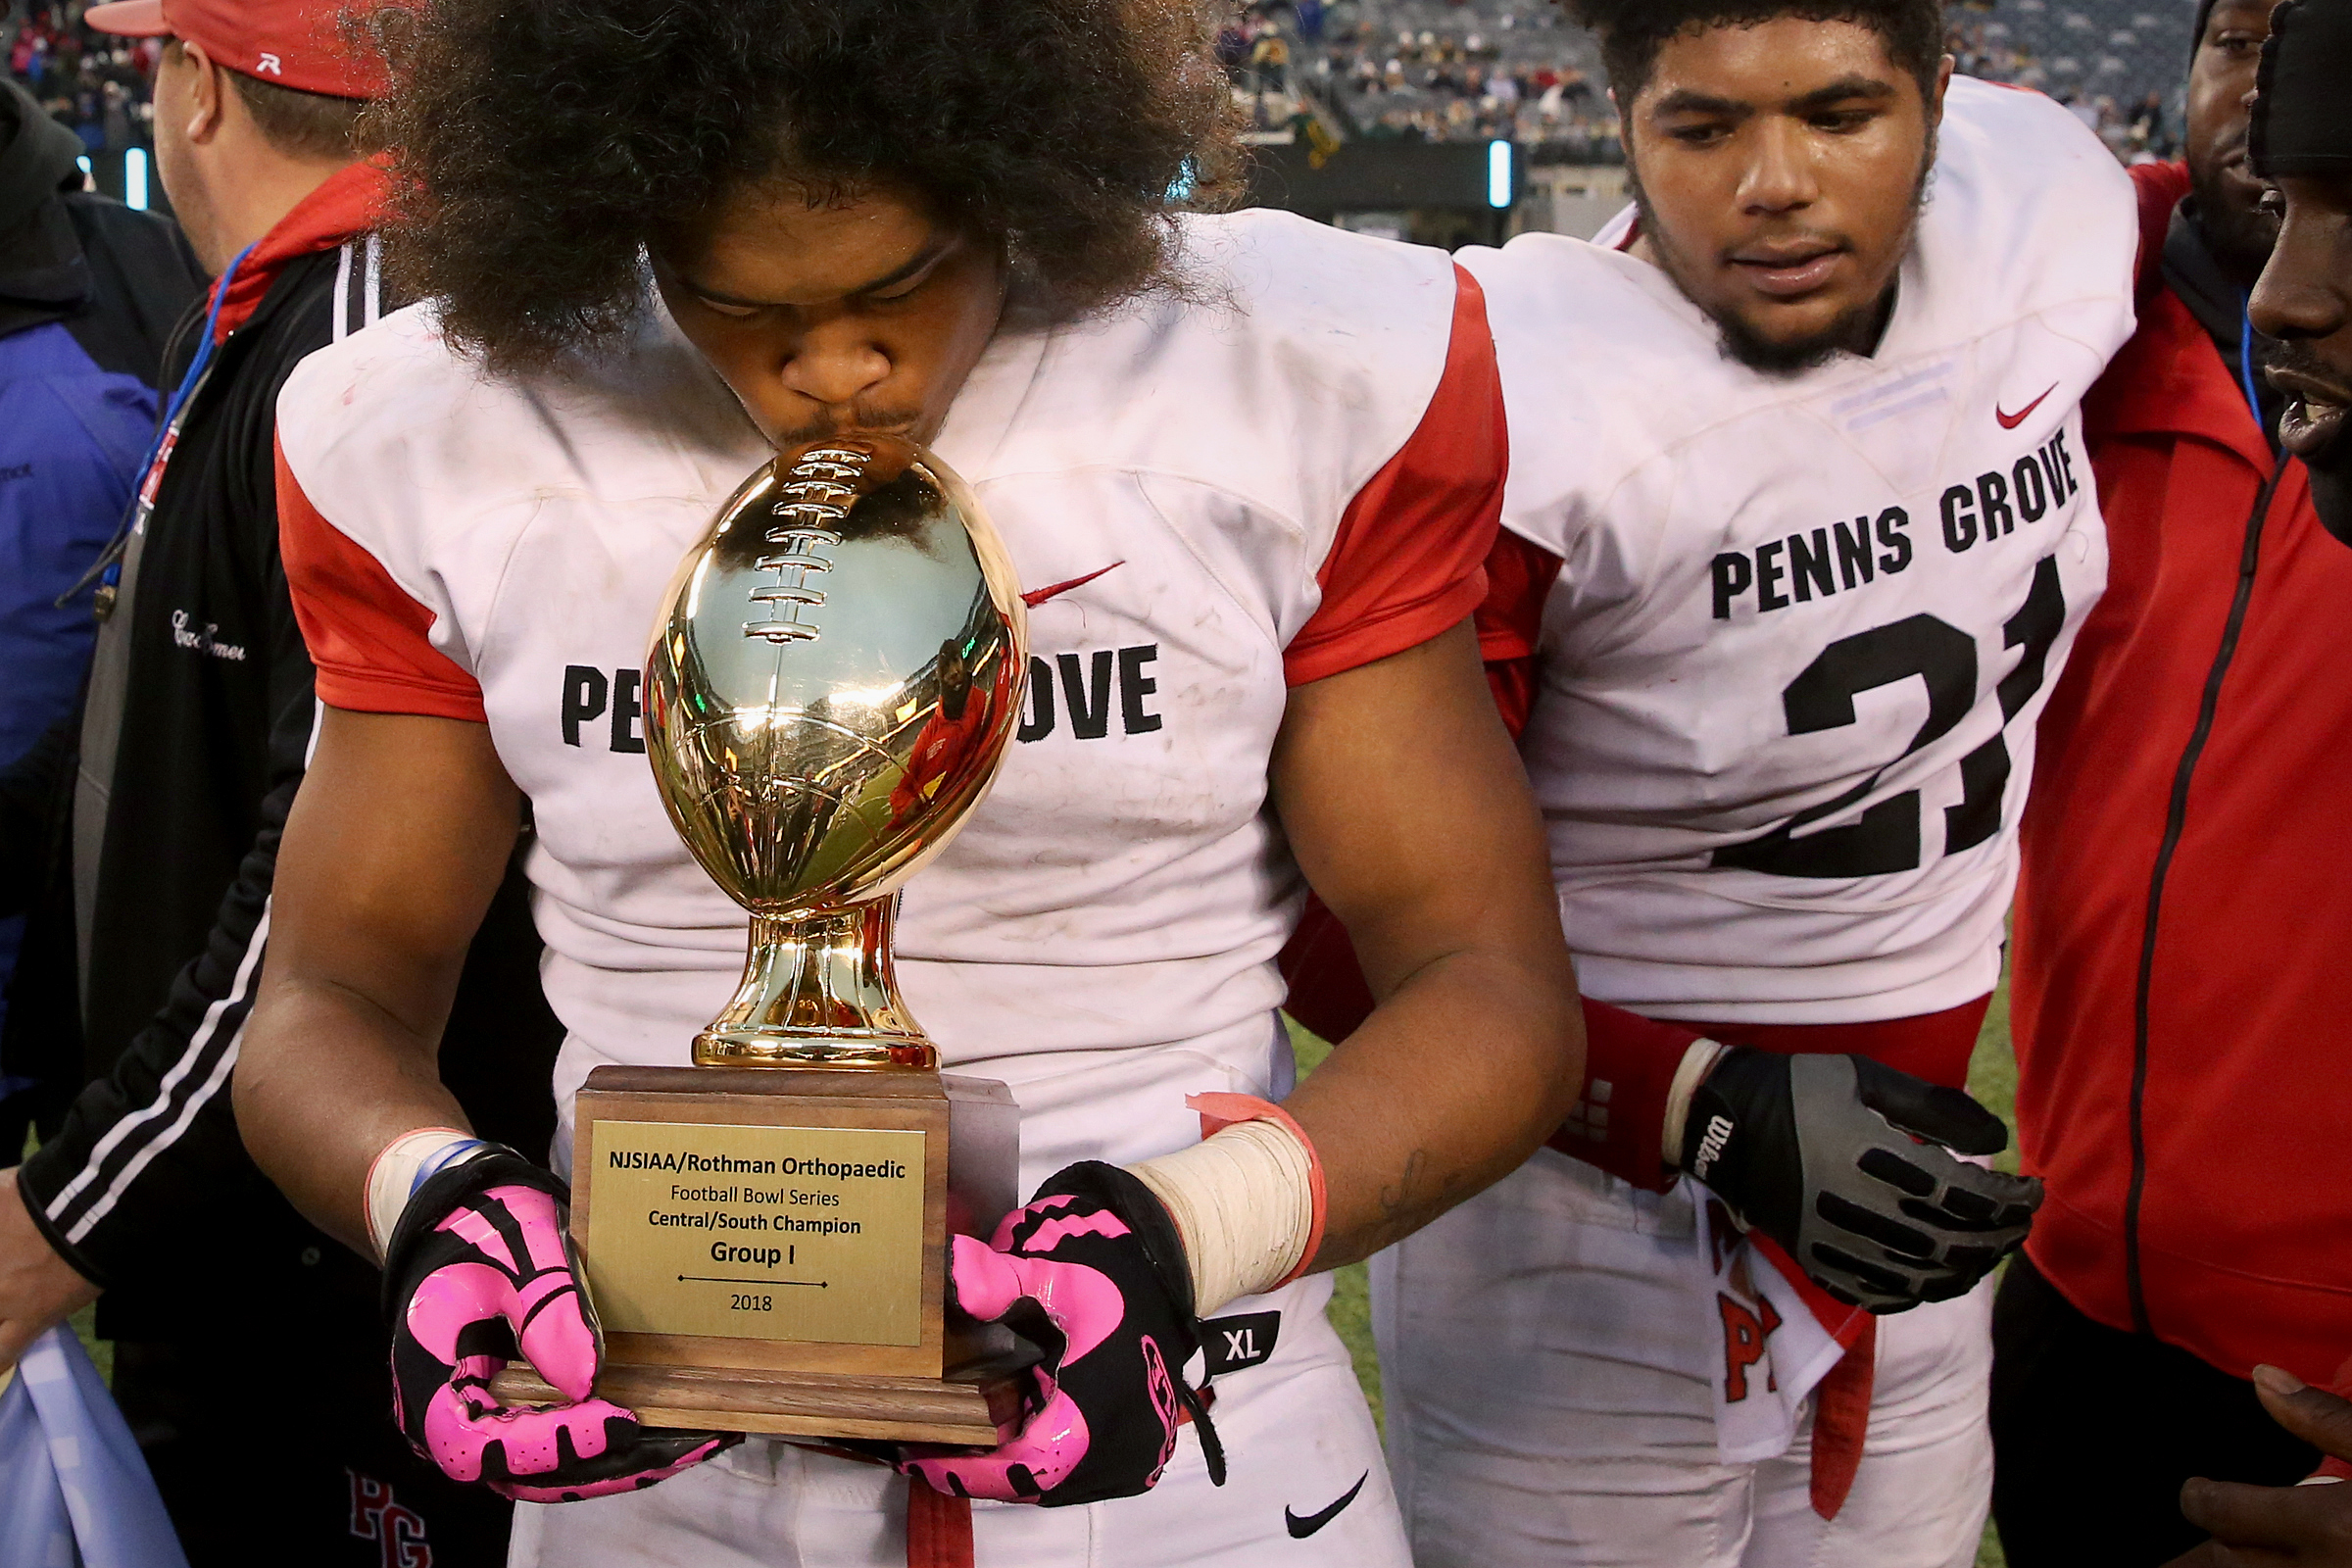 Penns Grove senior Tyreke Brown kisses the trophy after his team´s victory over Willingboro.